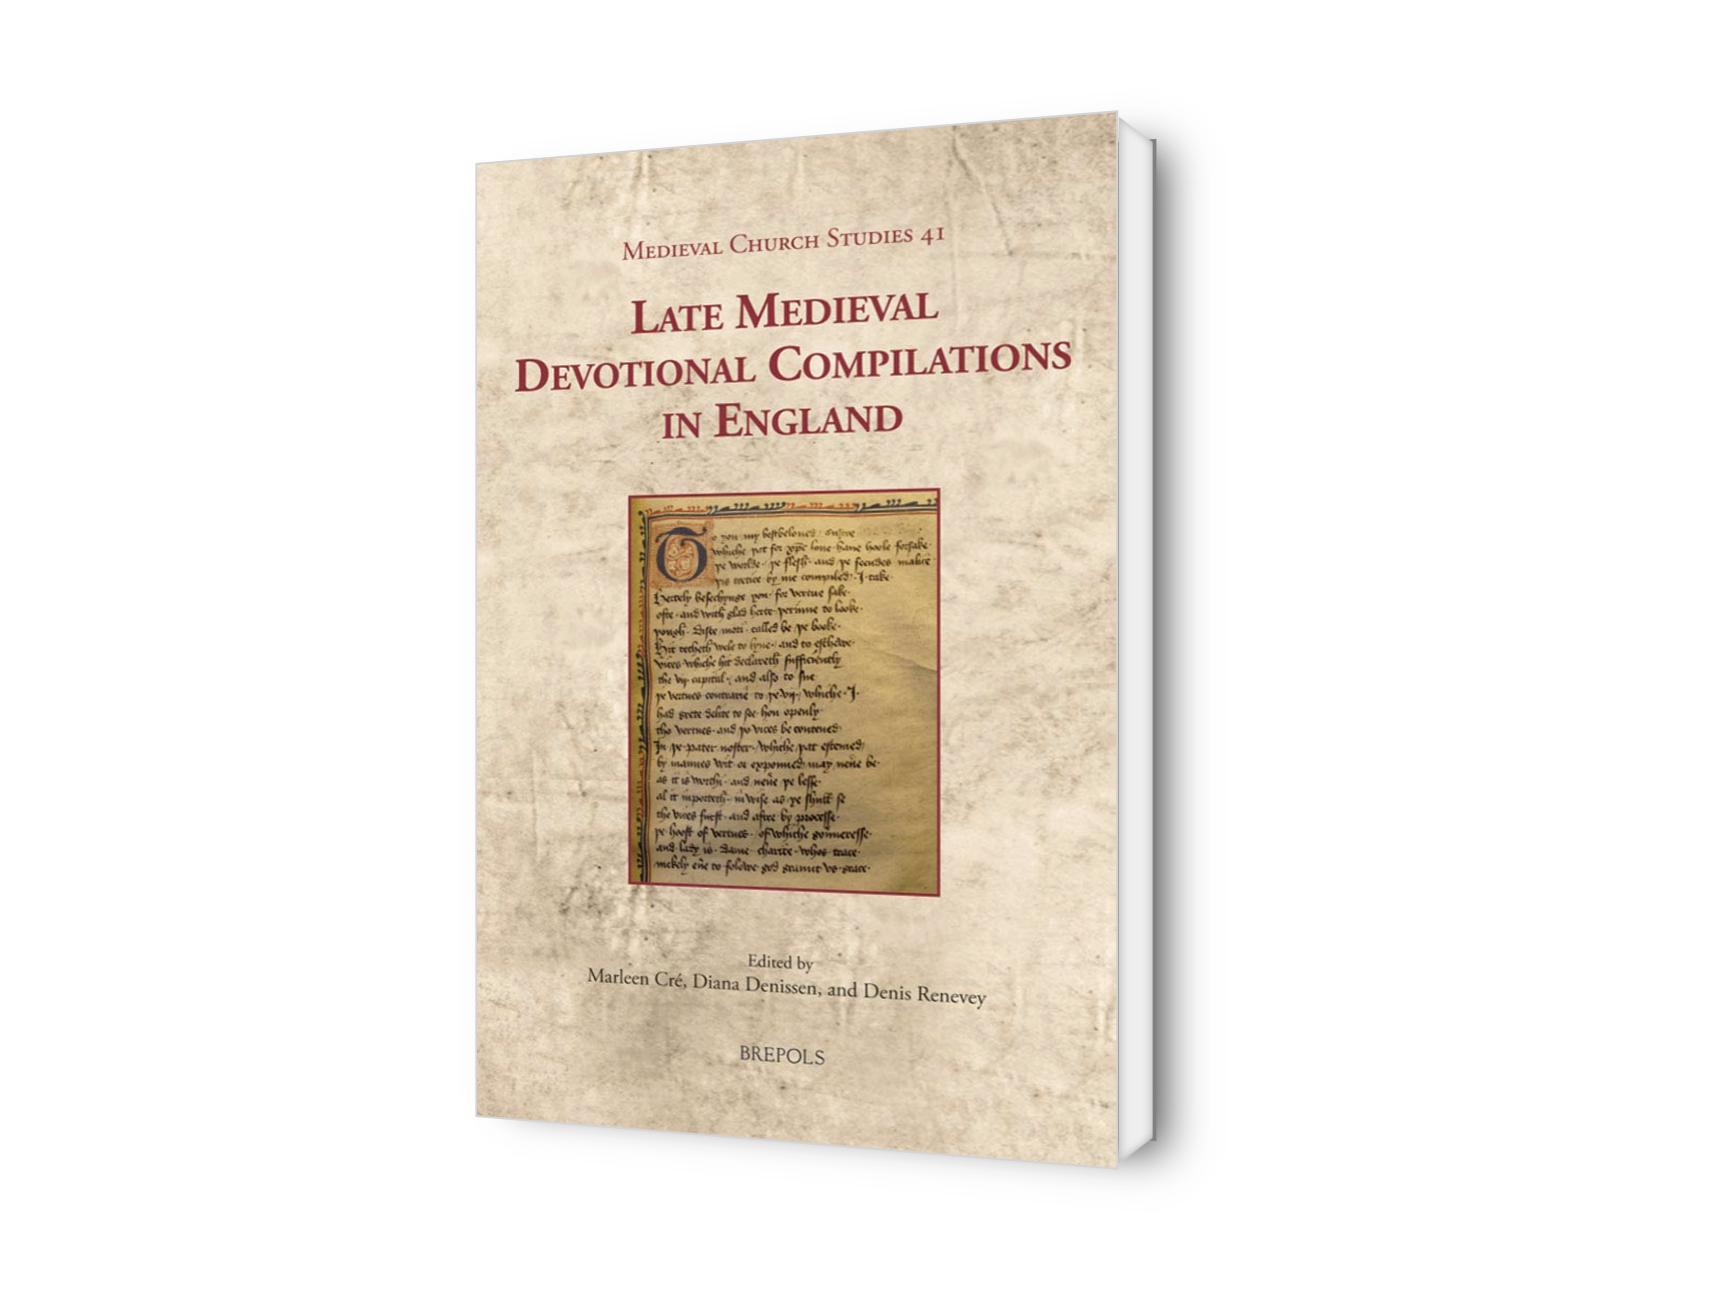 Late Medieval Devotional Compilations in England